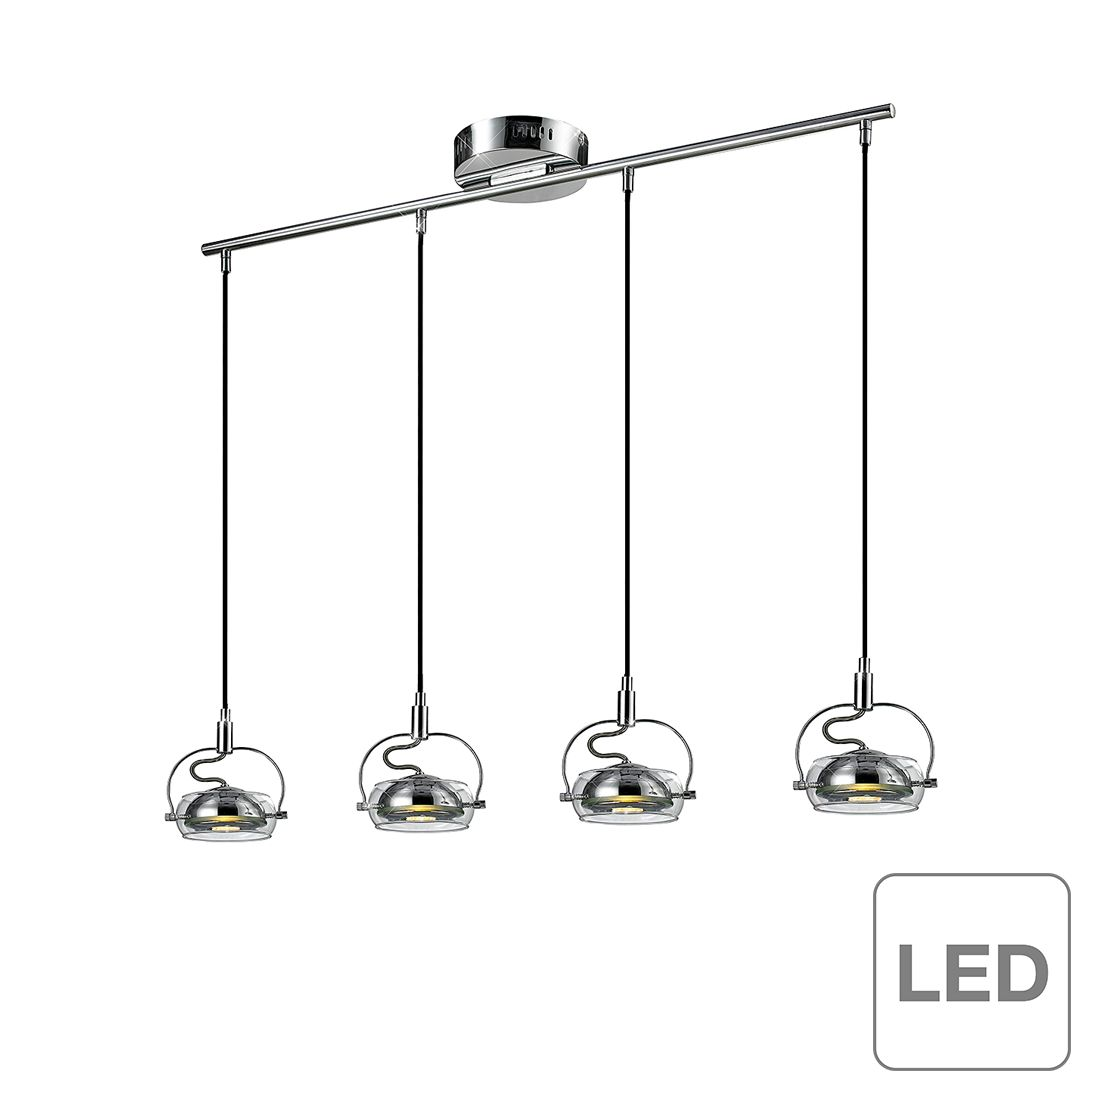 Pendelleuchte Luminee Led - 4-flammig, Esto